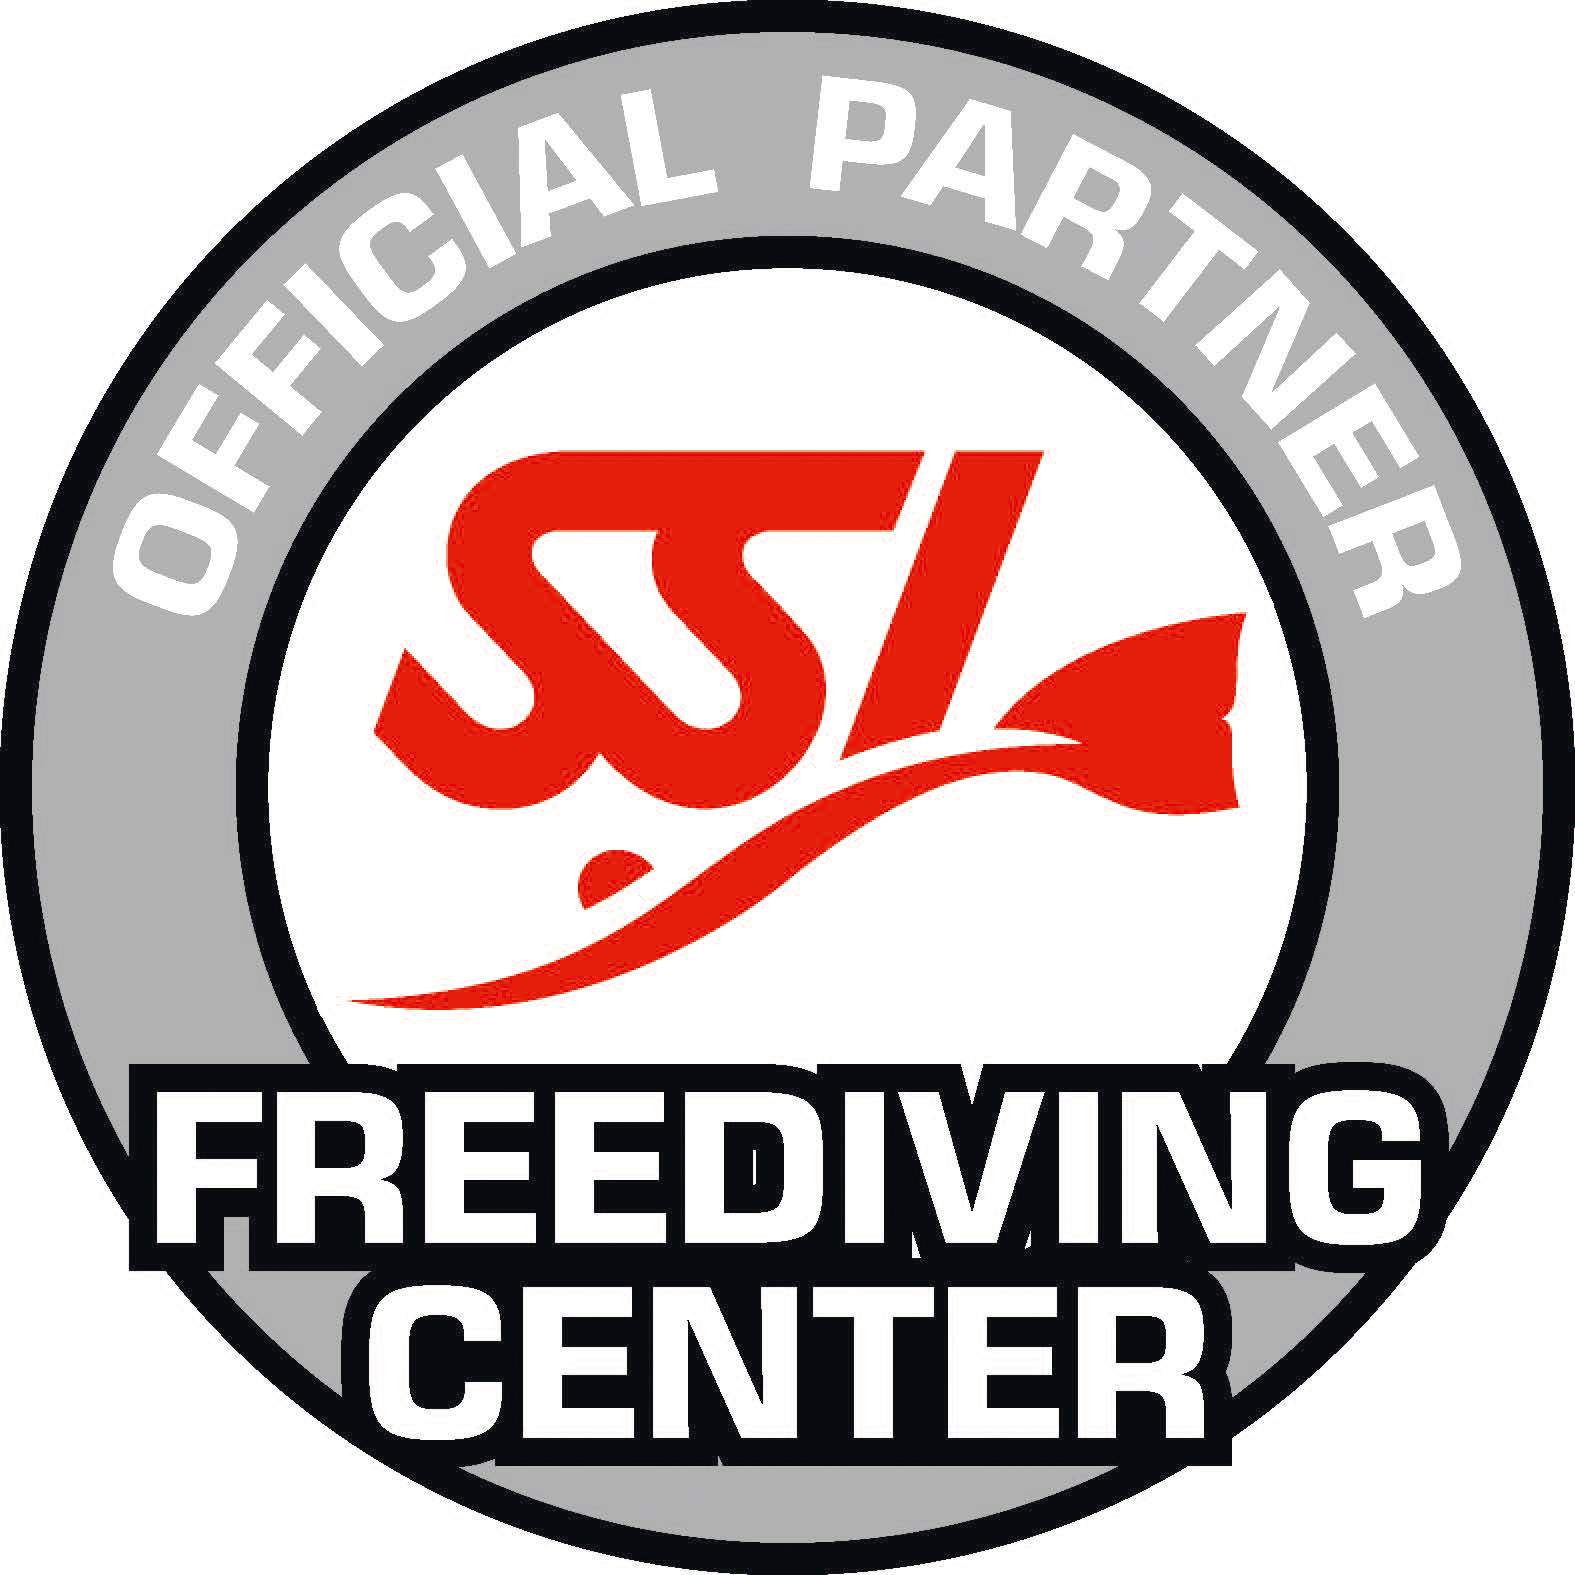 ssi_logo_freediving_center_rgb